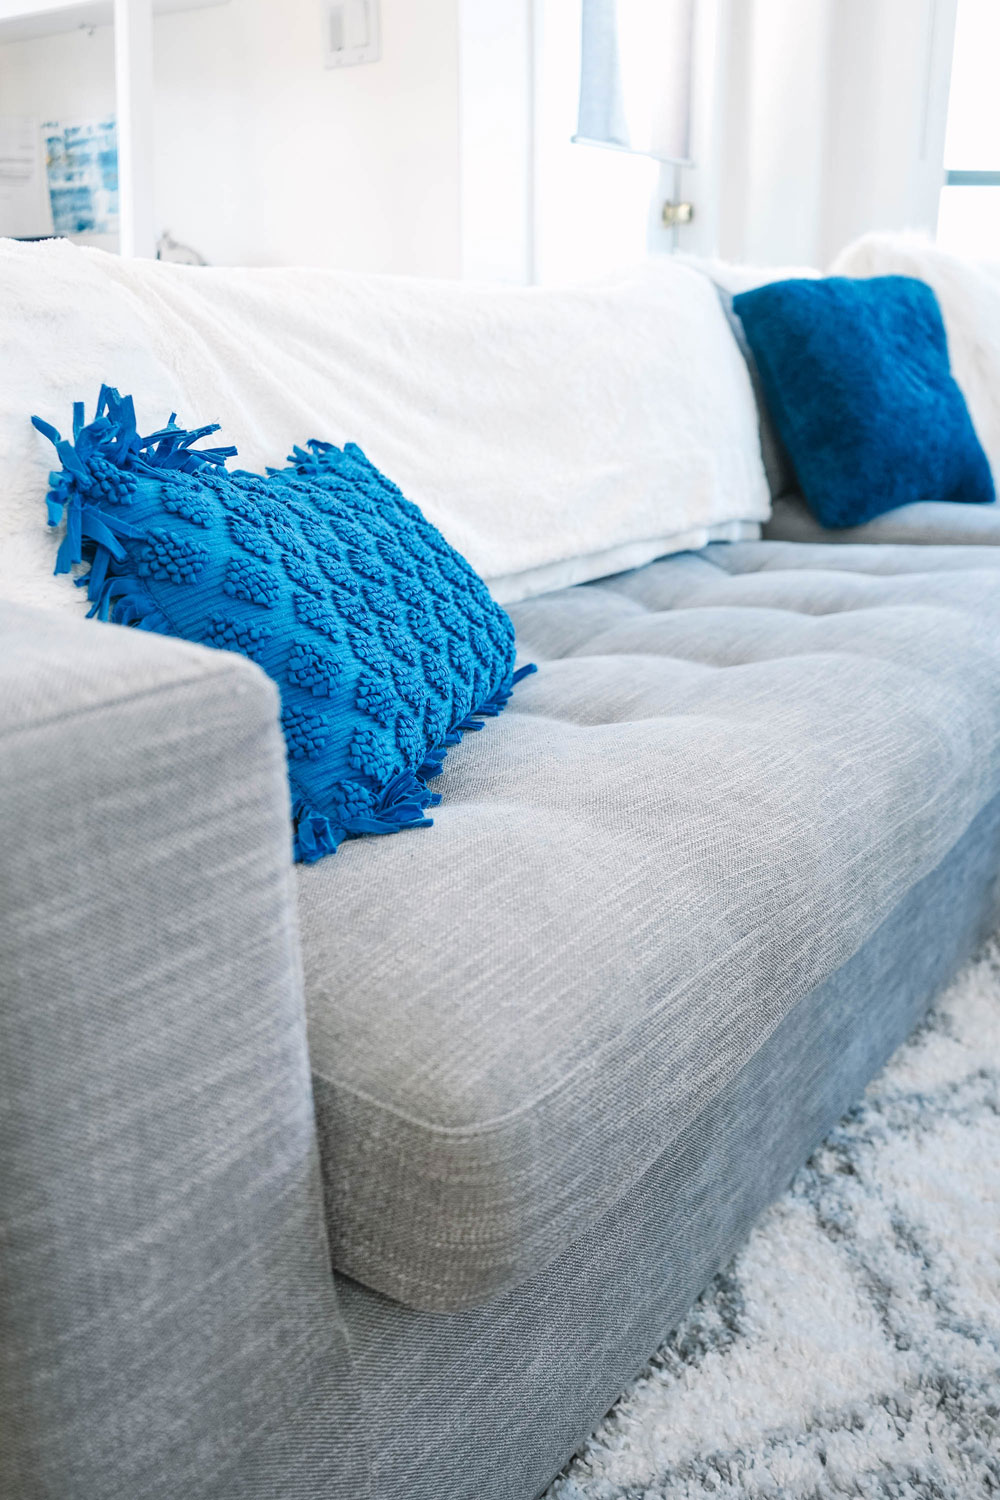 Textured Mexican pillow